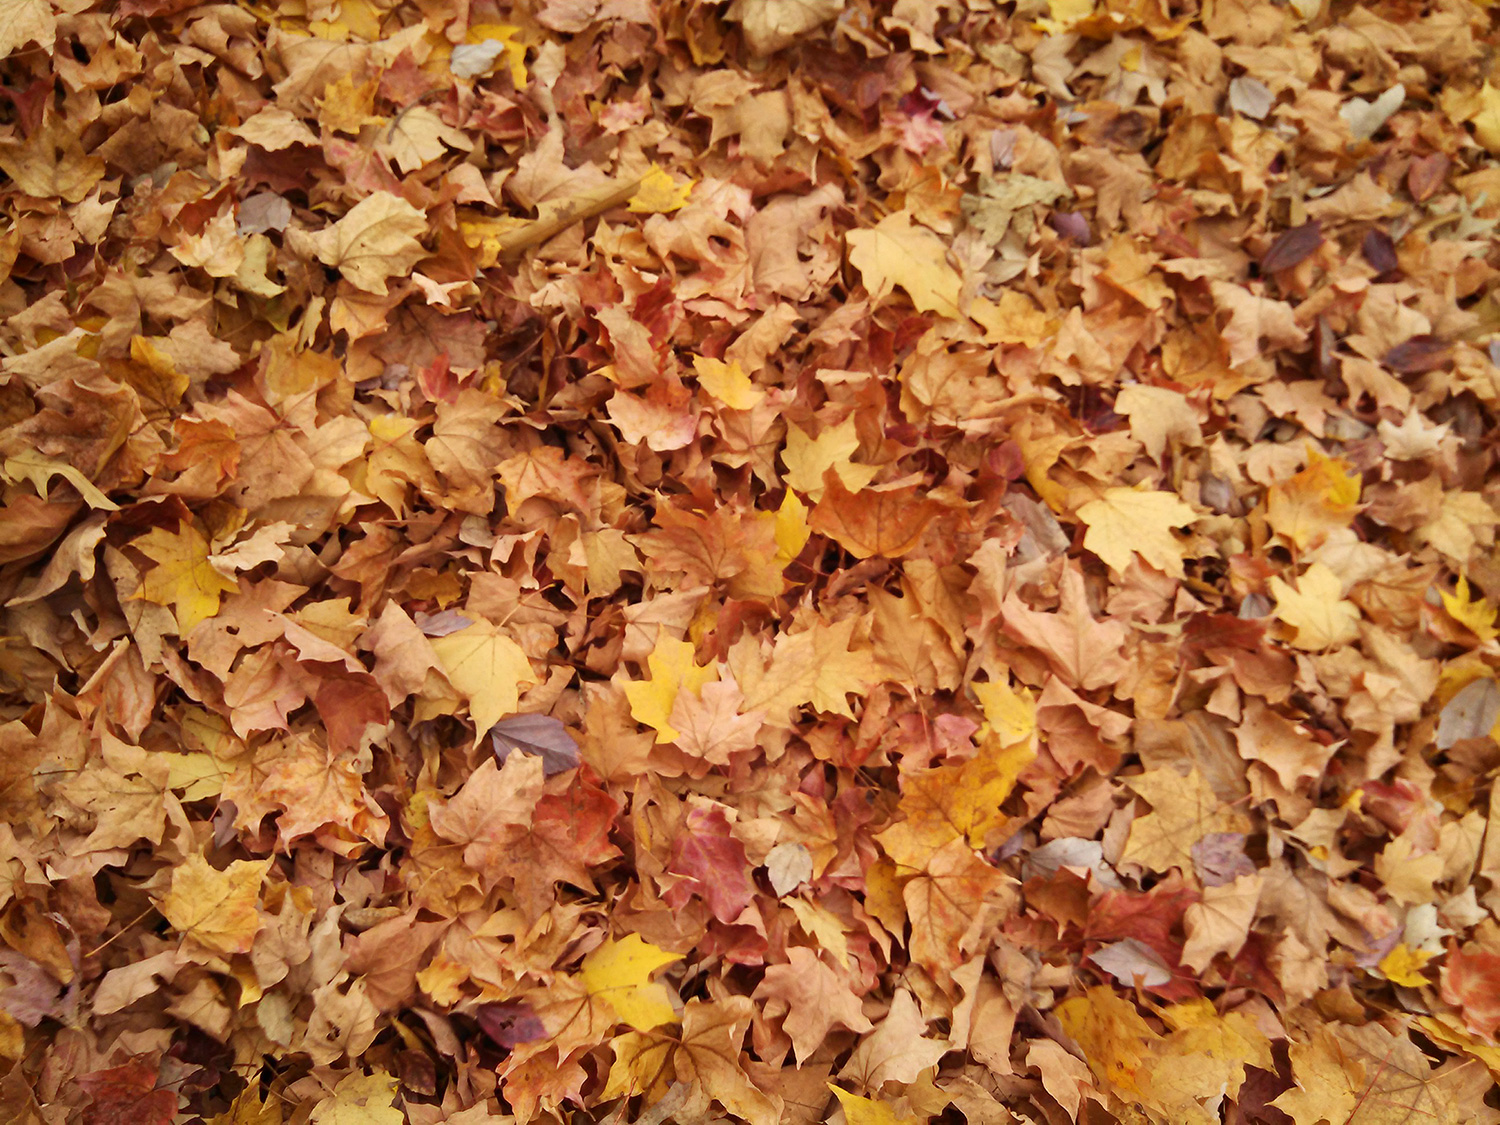 A carpet of fallen maple leaves